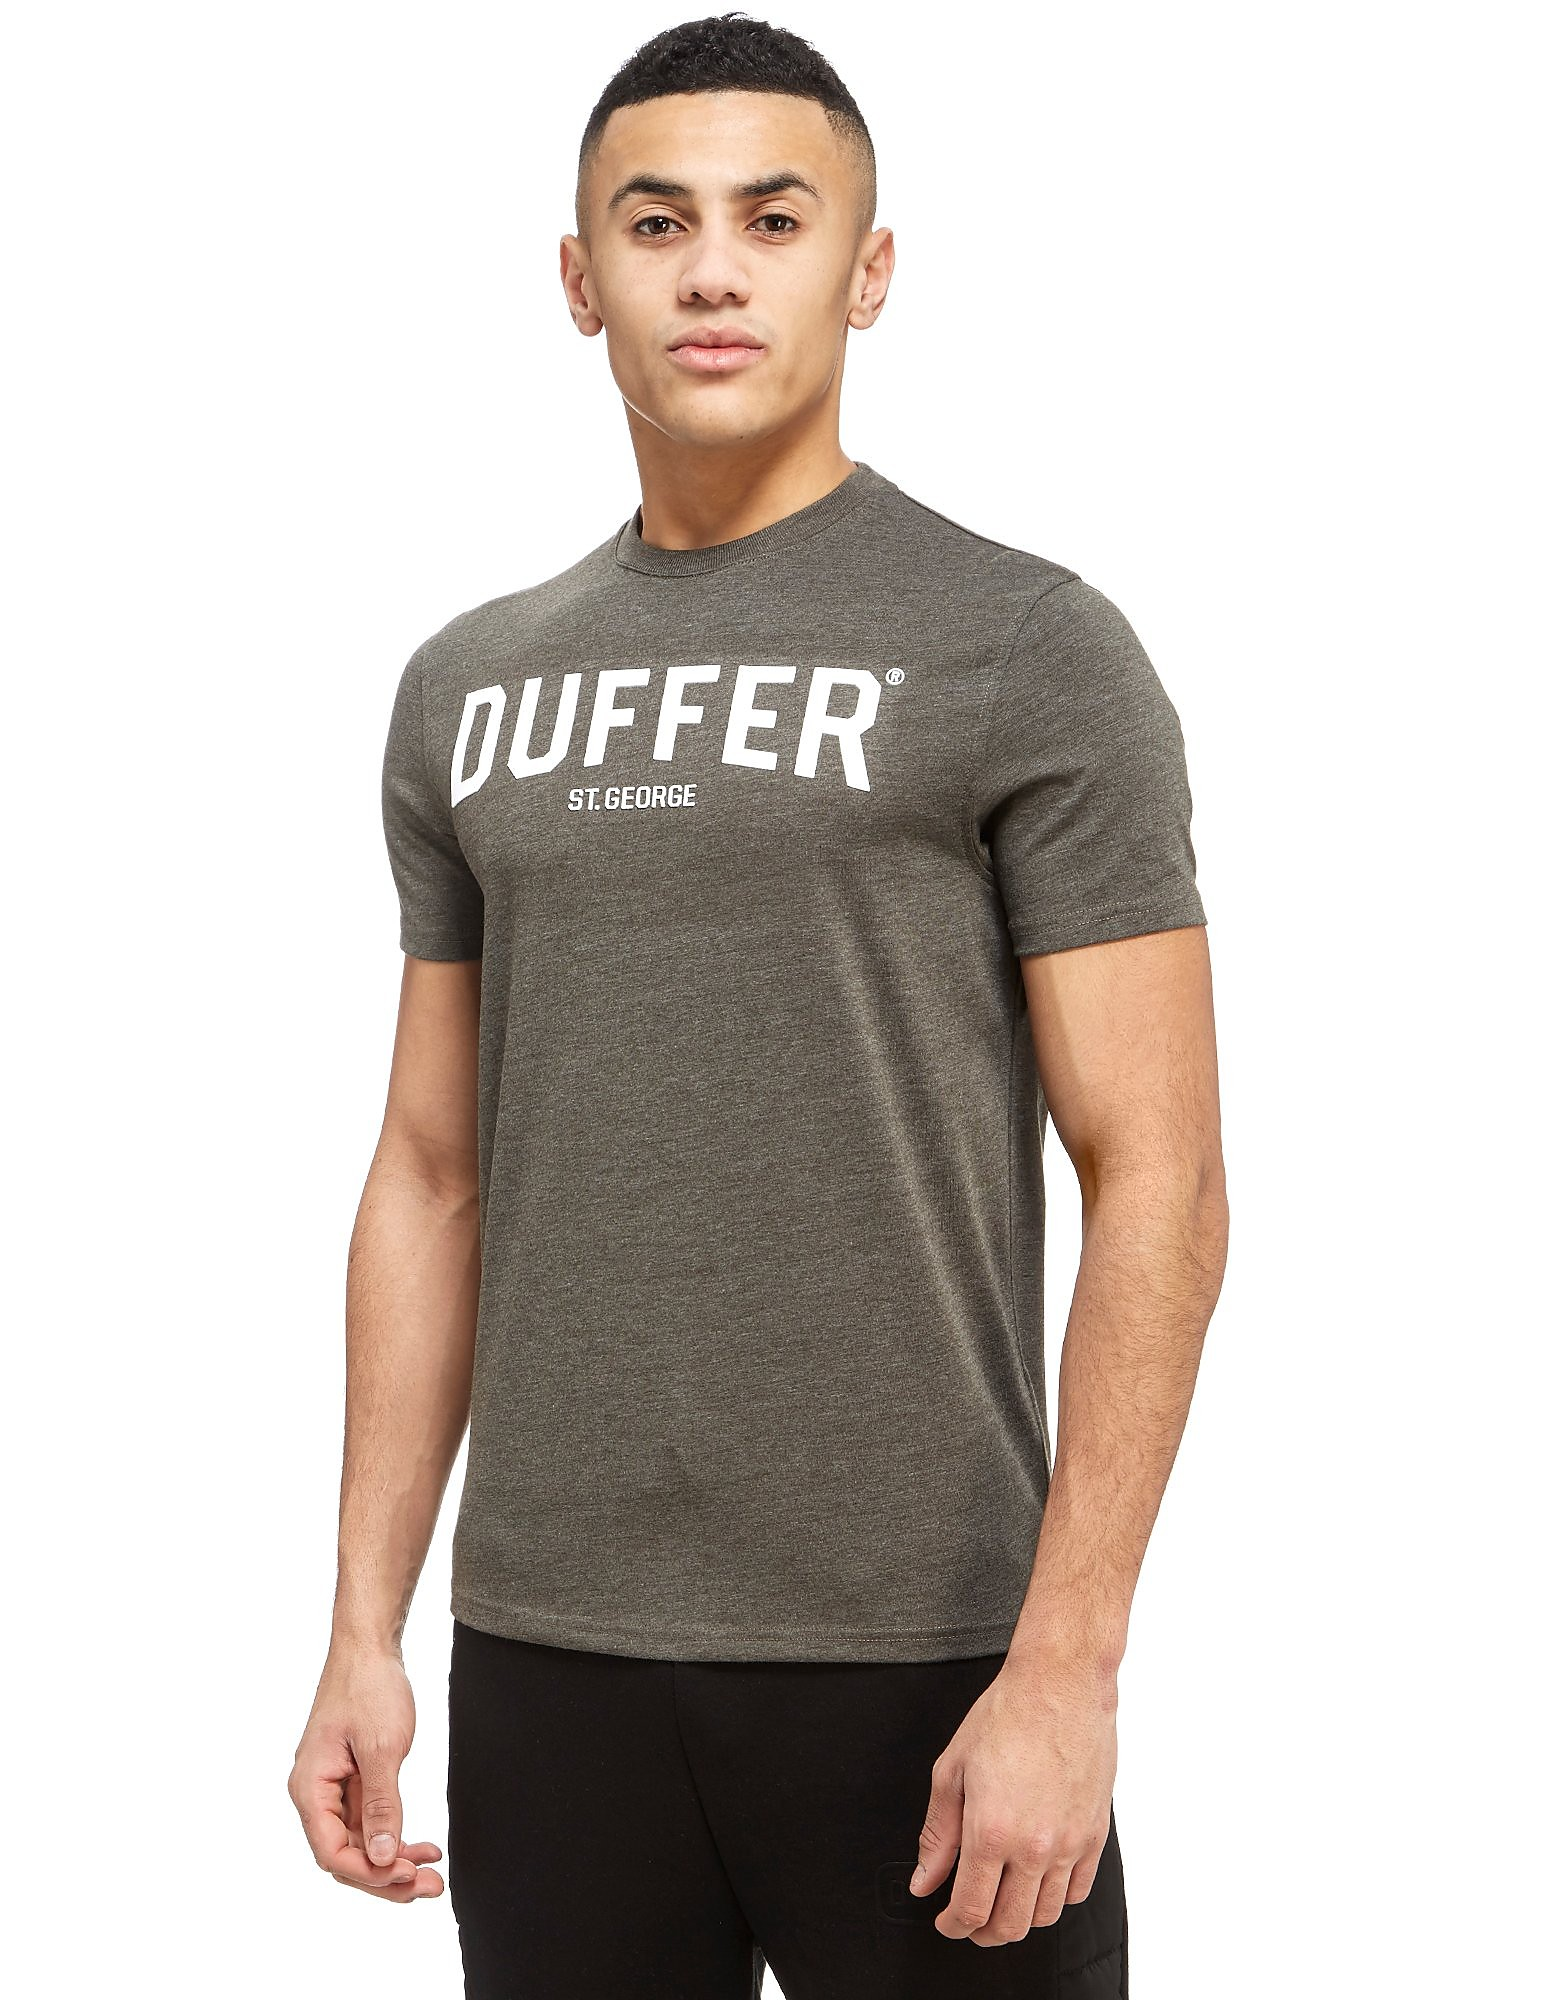 Duffer of St George Camiseta Resource